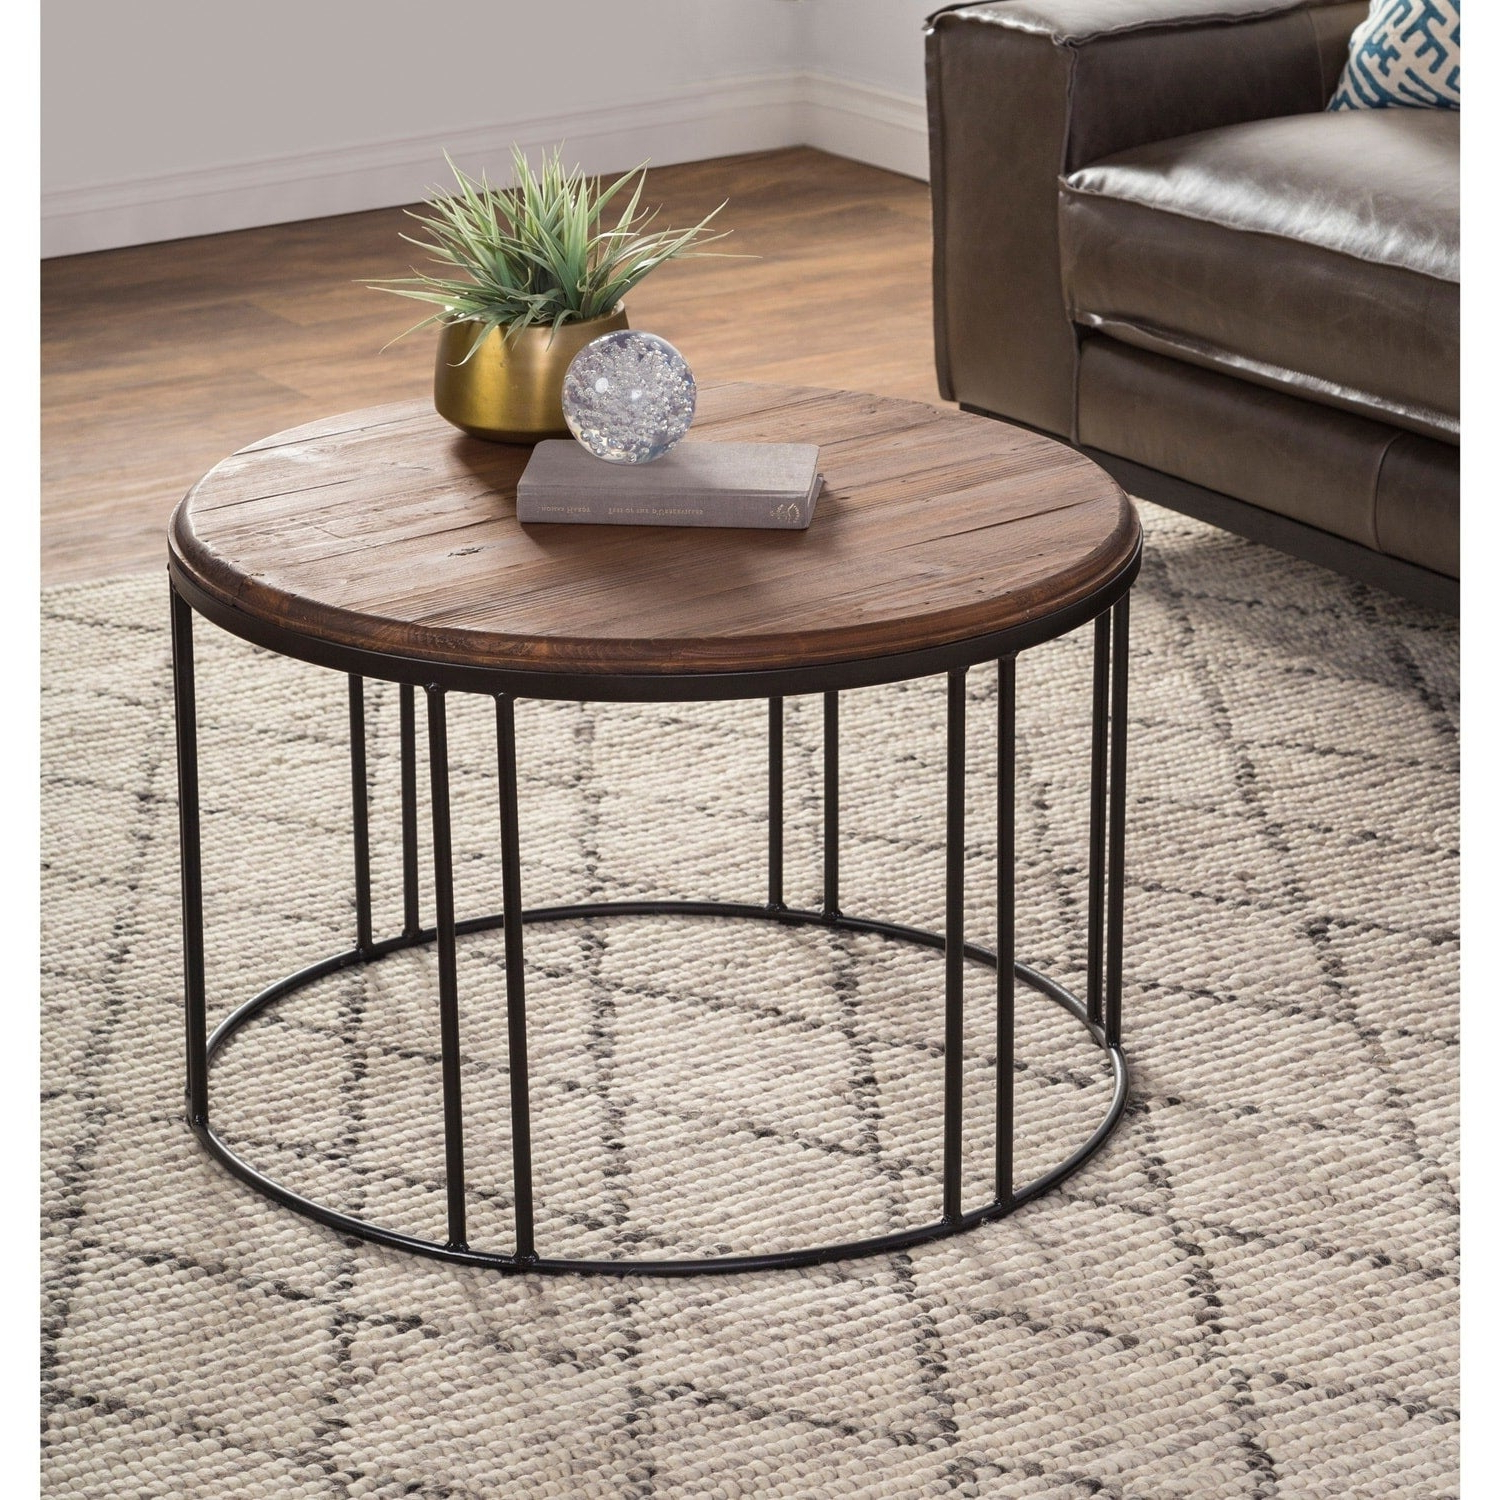 2019 Paris Natural Wood And Iron 30 Inch Square Coffee Tables Pertaining To Burnham Reclaimed Wood And Iron Round Coffee Tablekosas Home (Gallery 18 of 20)